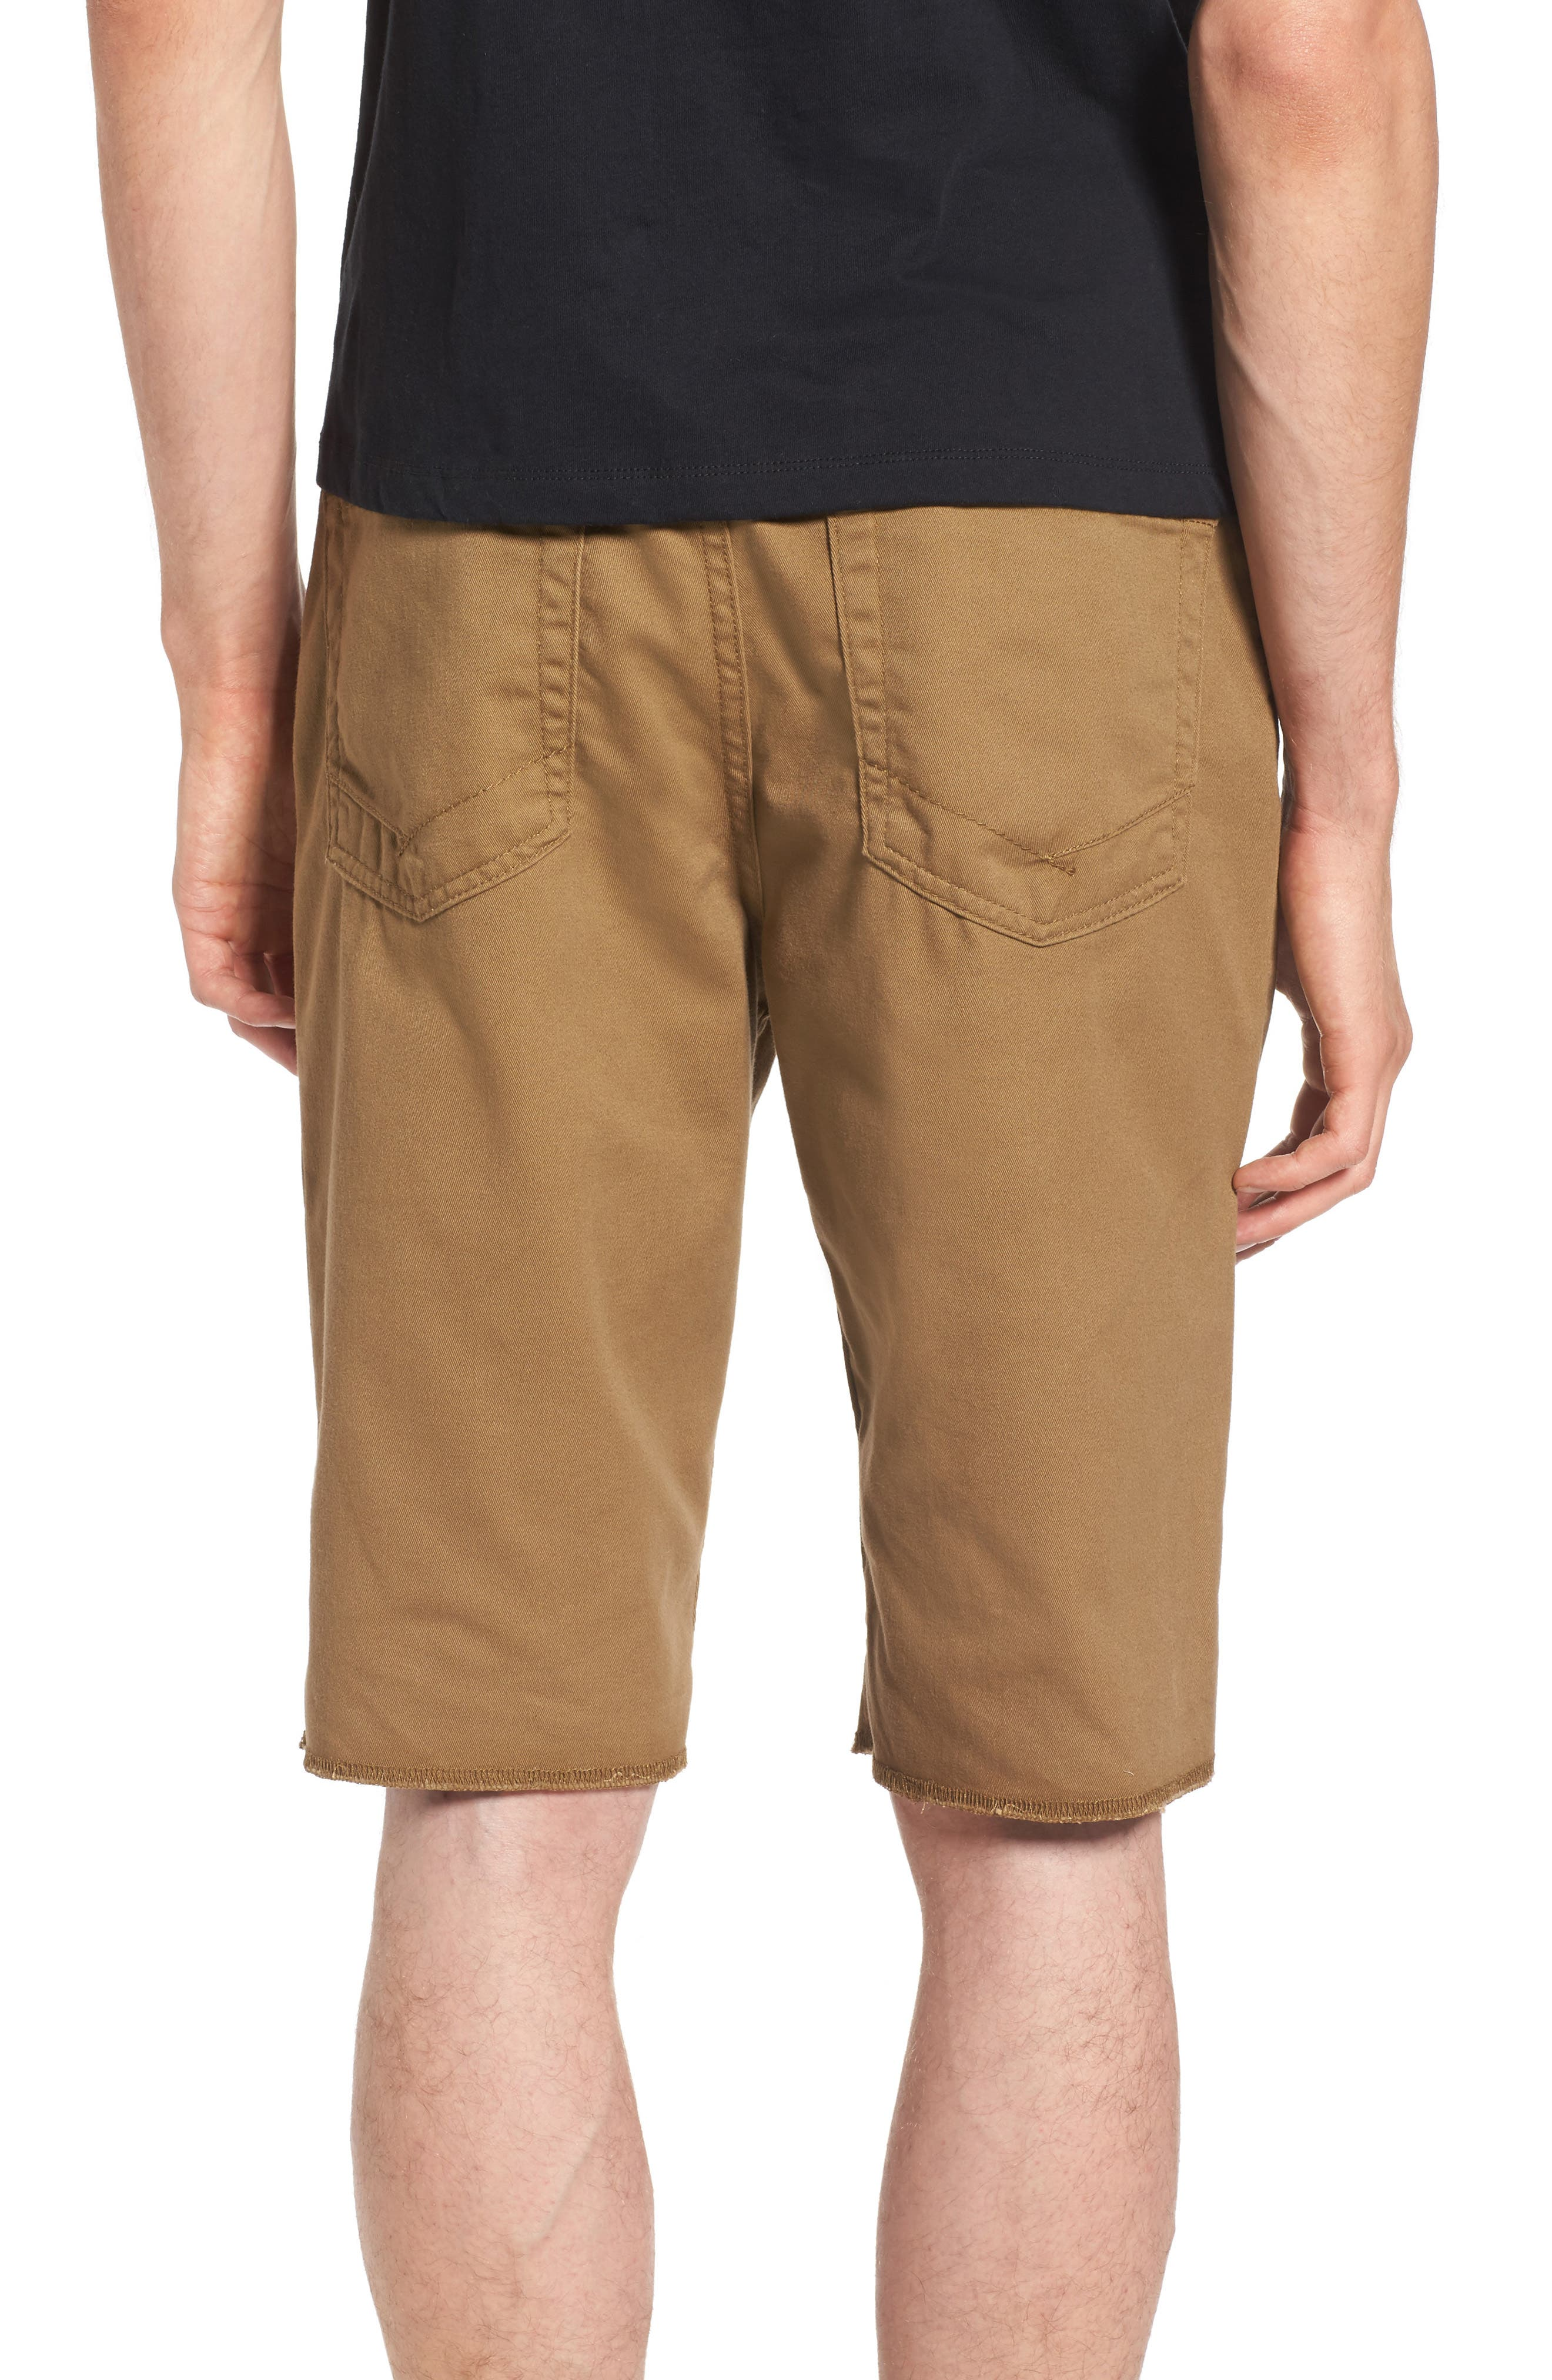 Alternate Image 2  - Vans Covina II - Anthony Van Engelen Twill Shorts